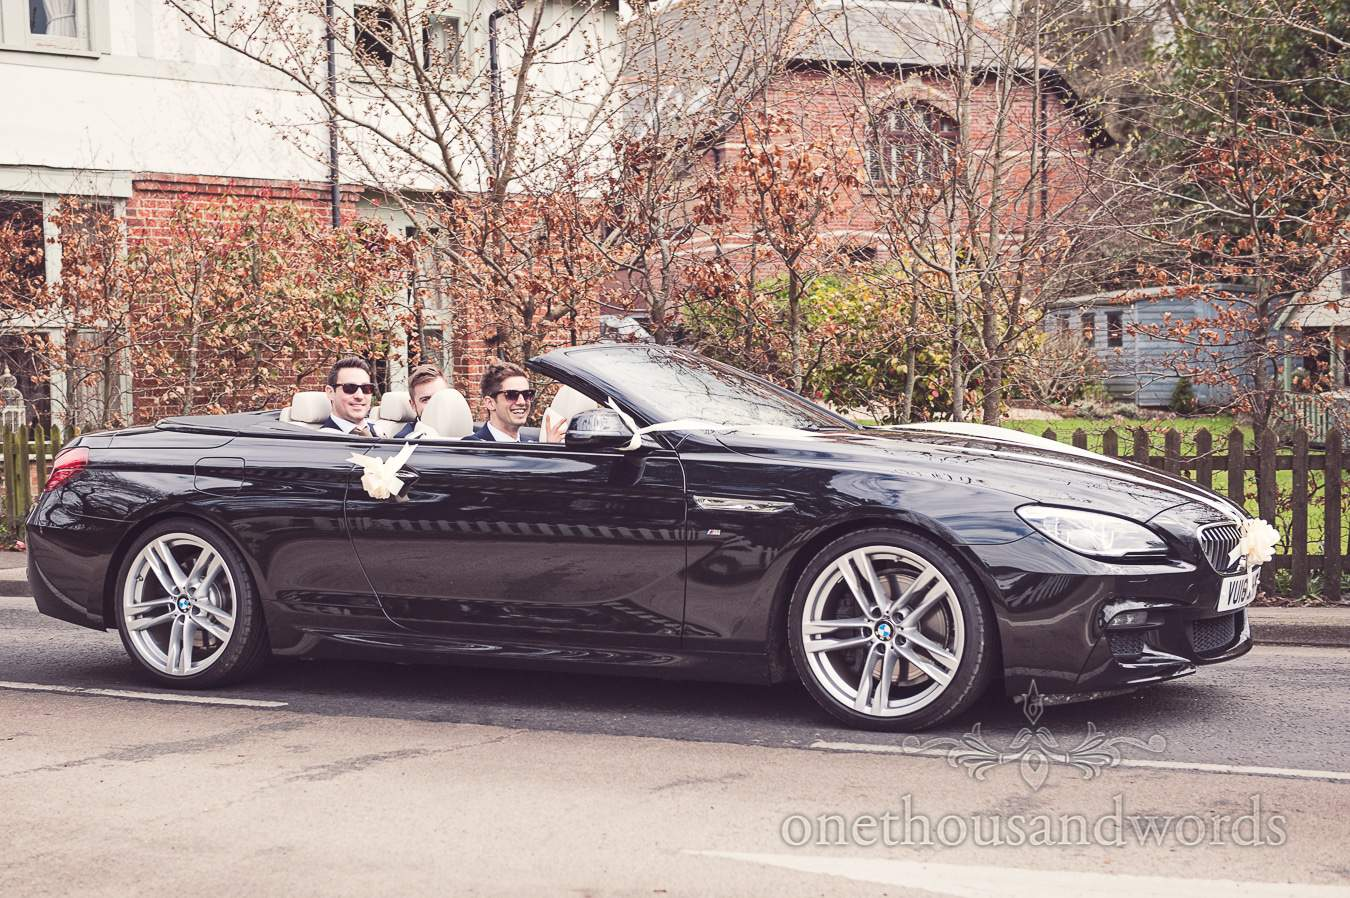 Groom and best men in wedding car before wedding at Sopley Mill